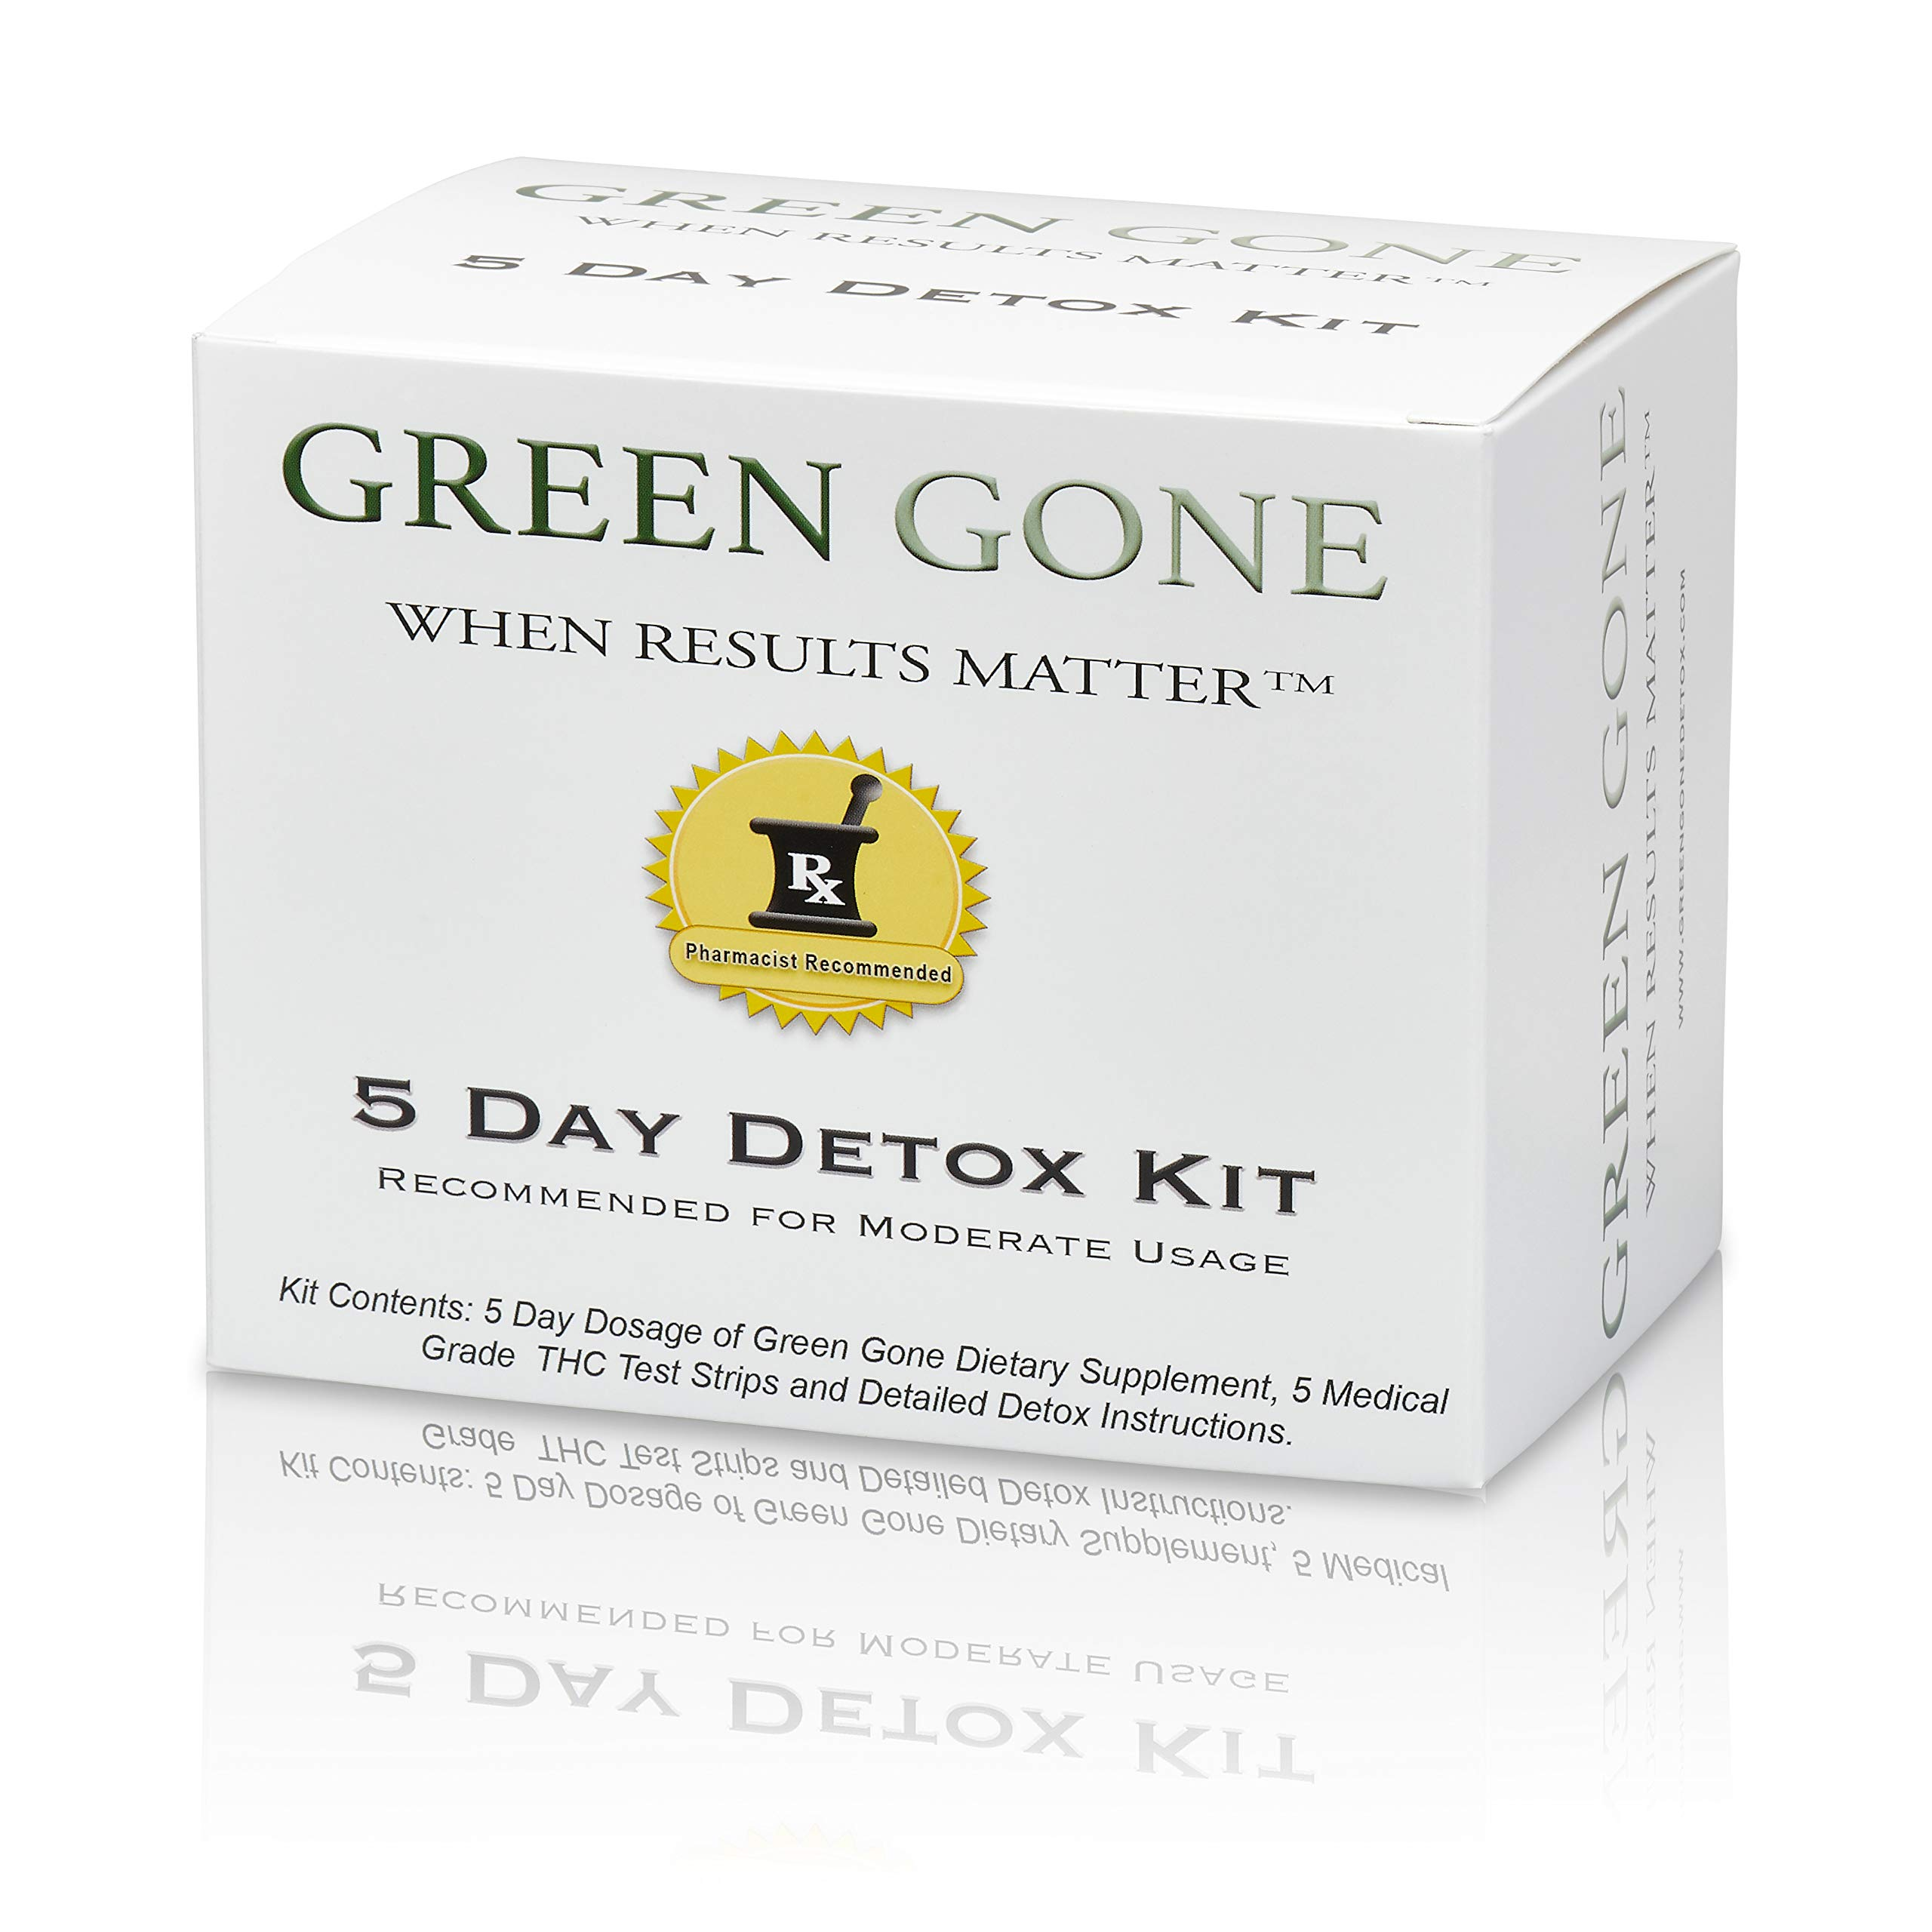 Green Gone 5 Day THC (Marijuana) Detox Kit - Permanent Cleanse, (for Moderate Usage) with 5 THC Test Strips! by Green Gone LLC